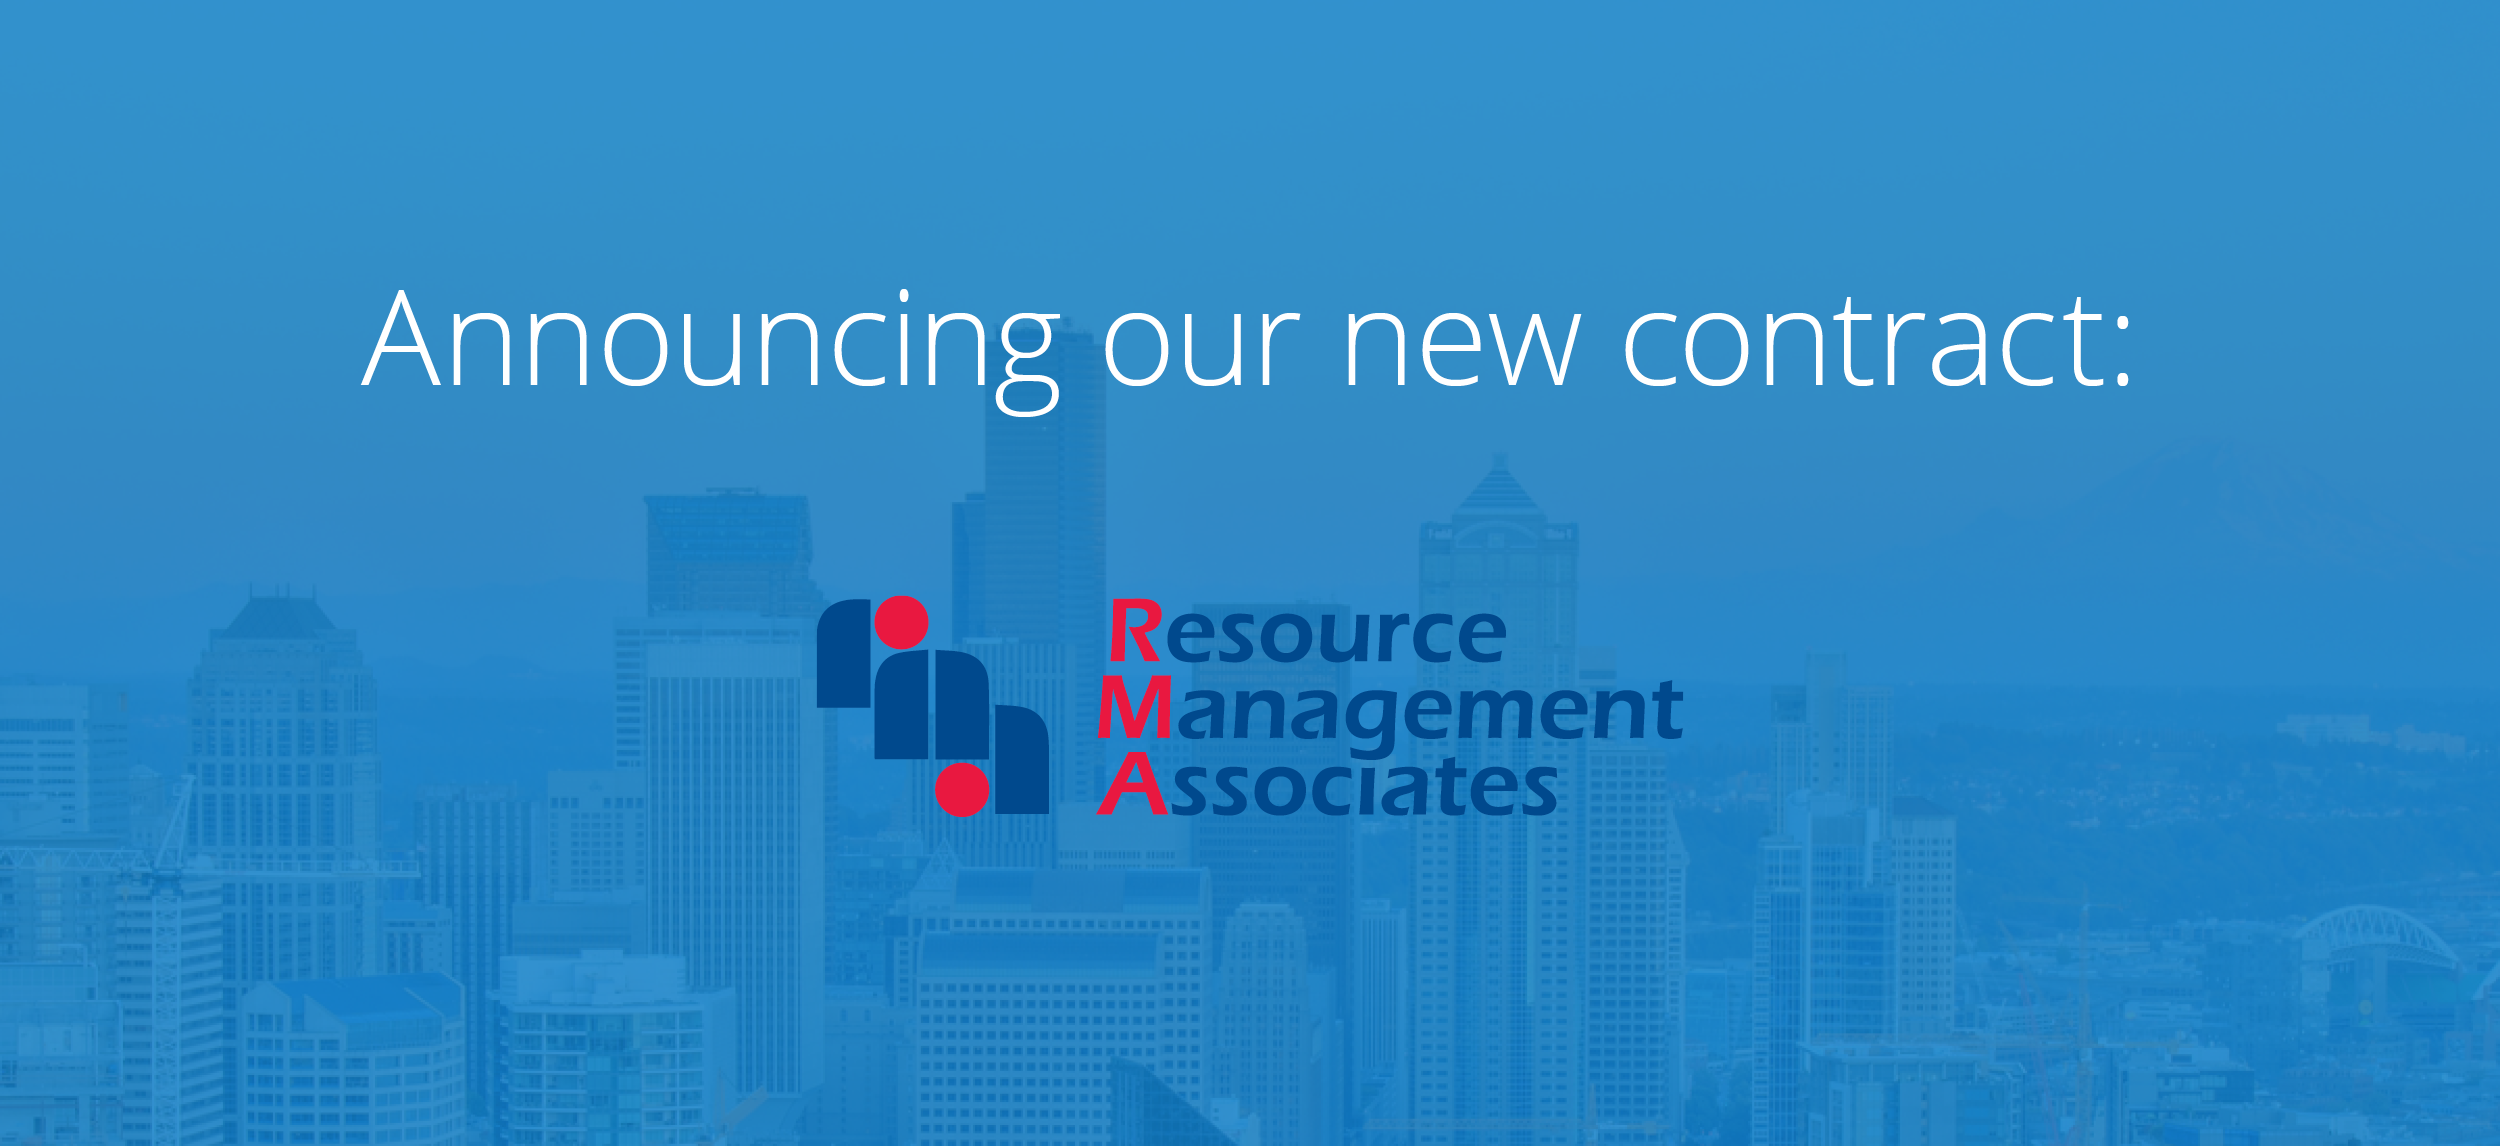 Announcing Resource Management Associates: Our Newest Contract